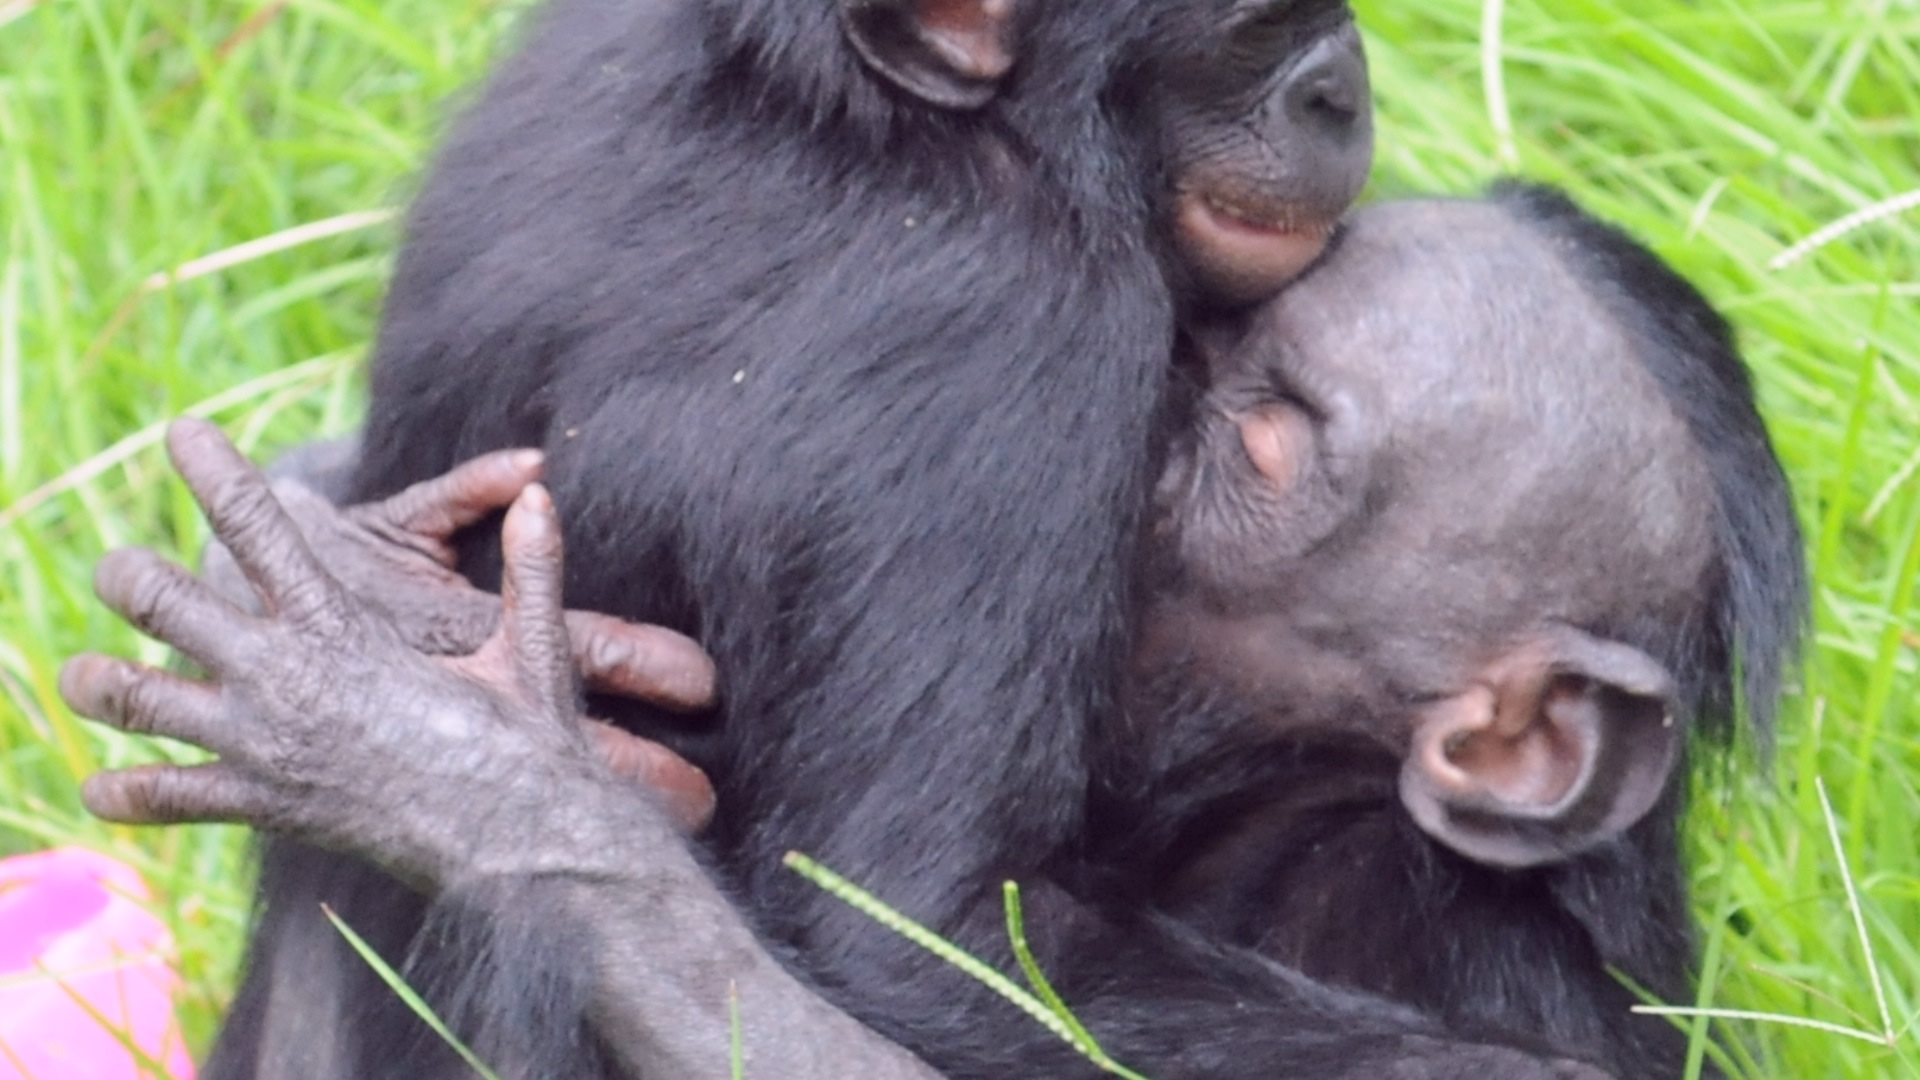 Growing Up Bonobo: Photographer Marian Brickner